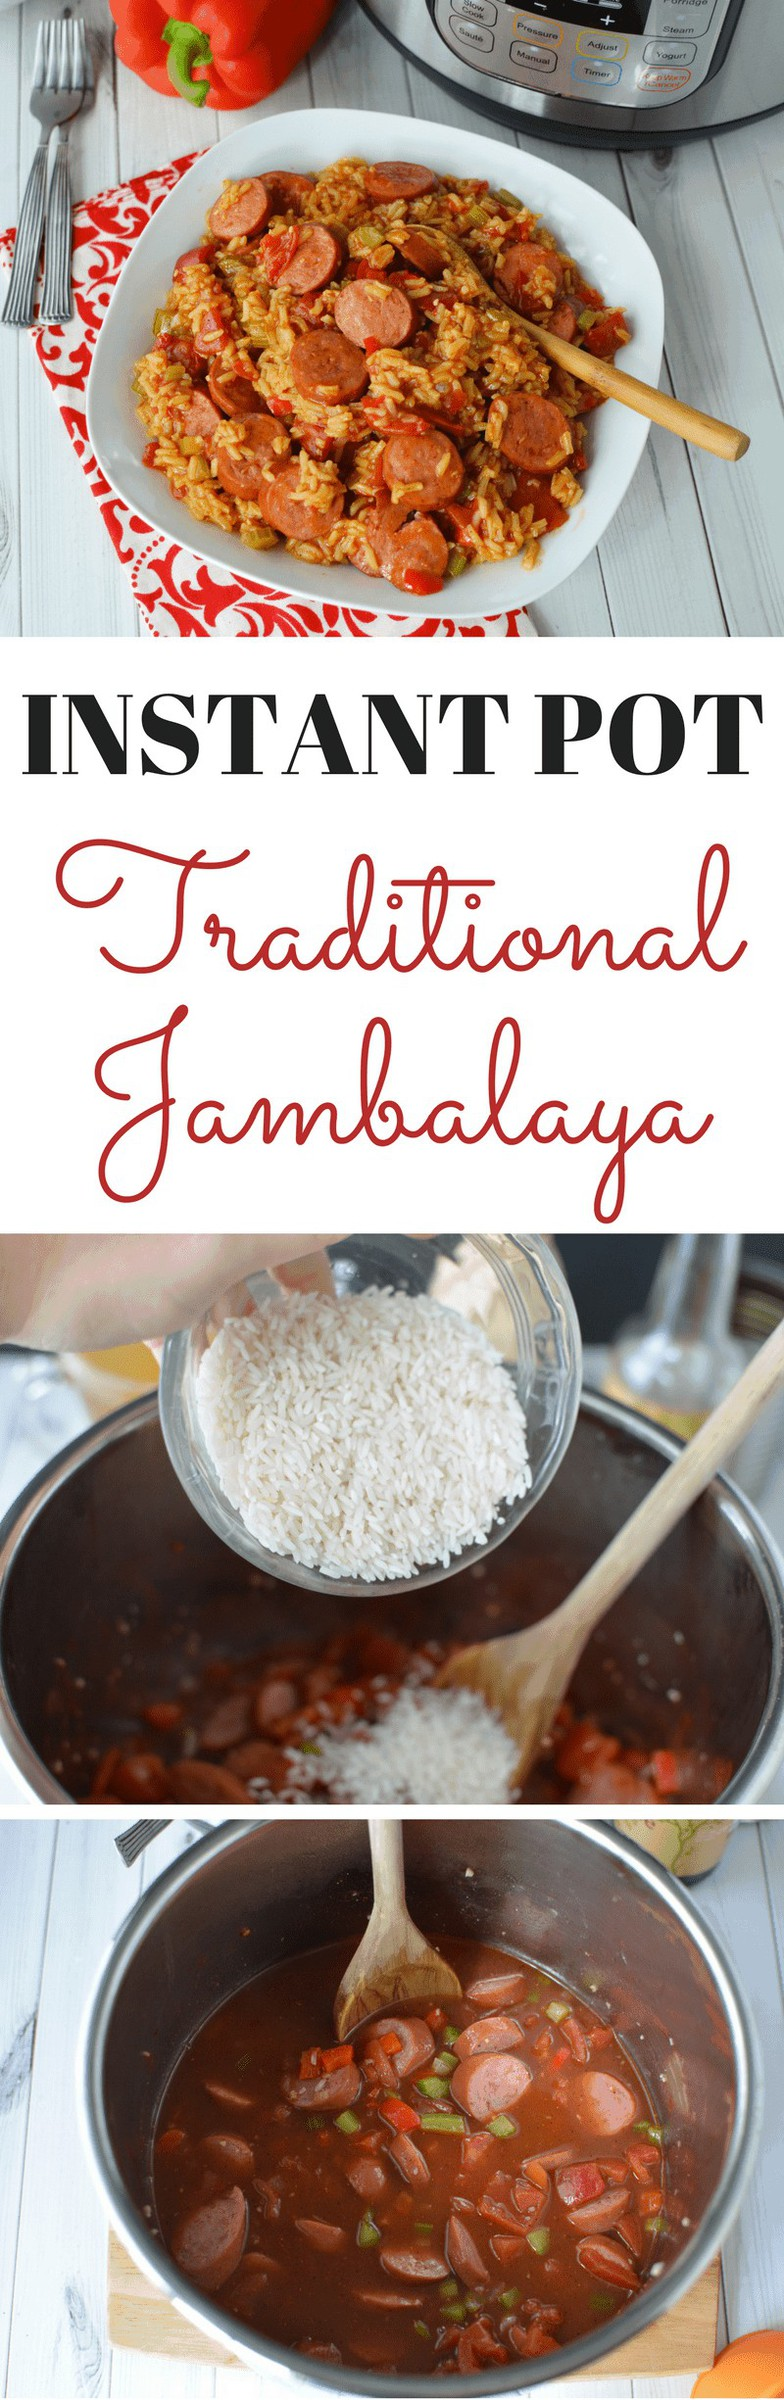 Serve your family this hearty Instant Pot Jambalaya for a hearty Winter dinner. The Southern recipe is one your whole family will love. #InstantPot #IP #JambalayaInstantPot https://lifefamilyfun.com/instant-pot-jambalaya/